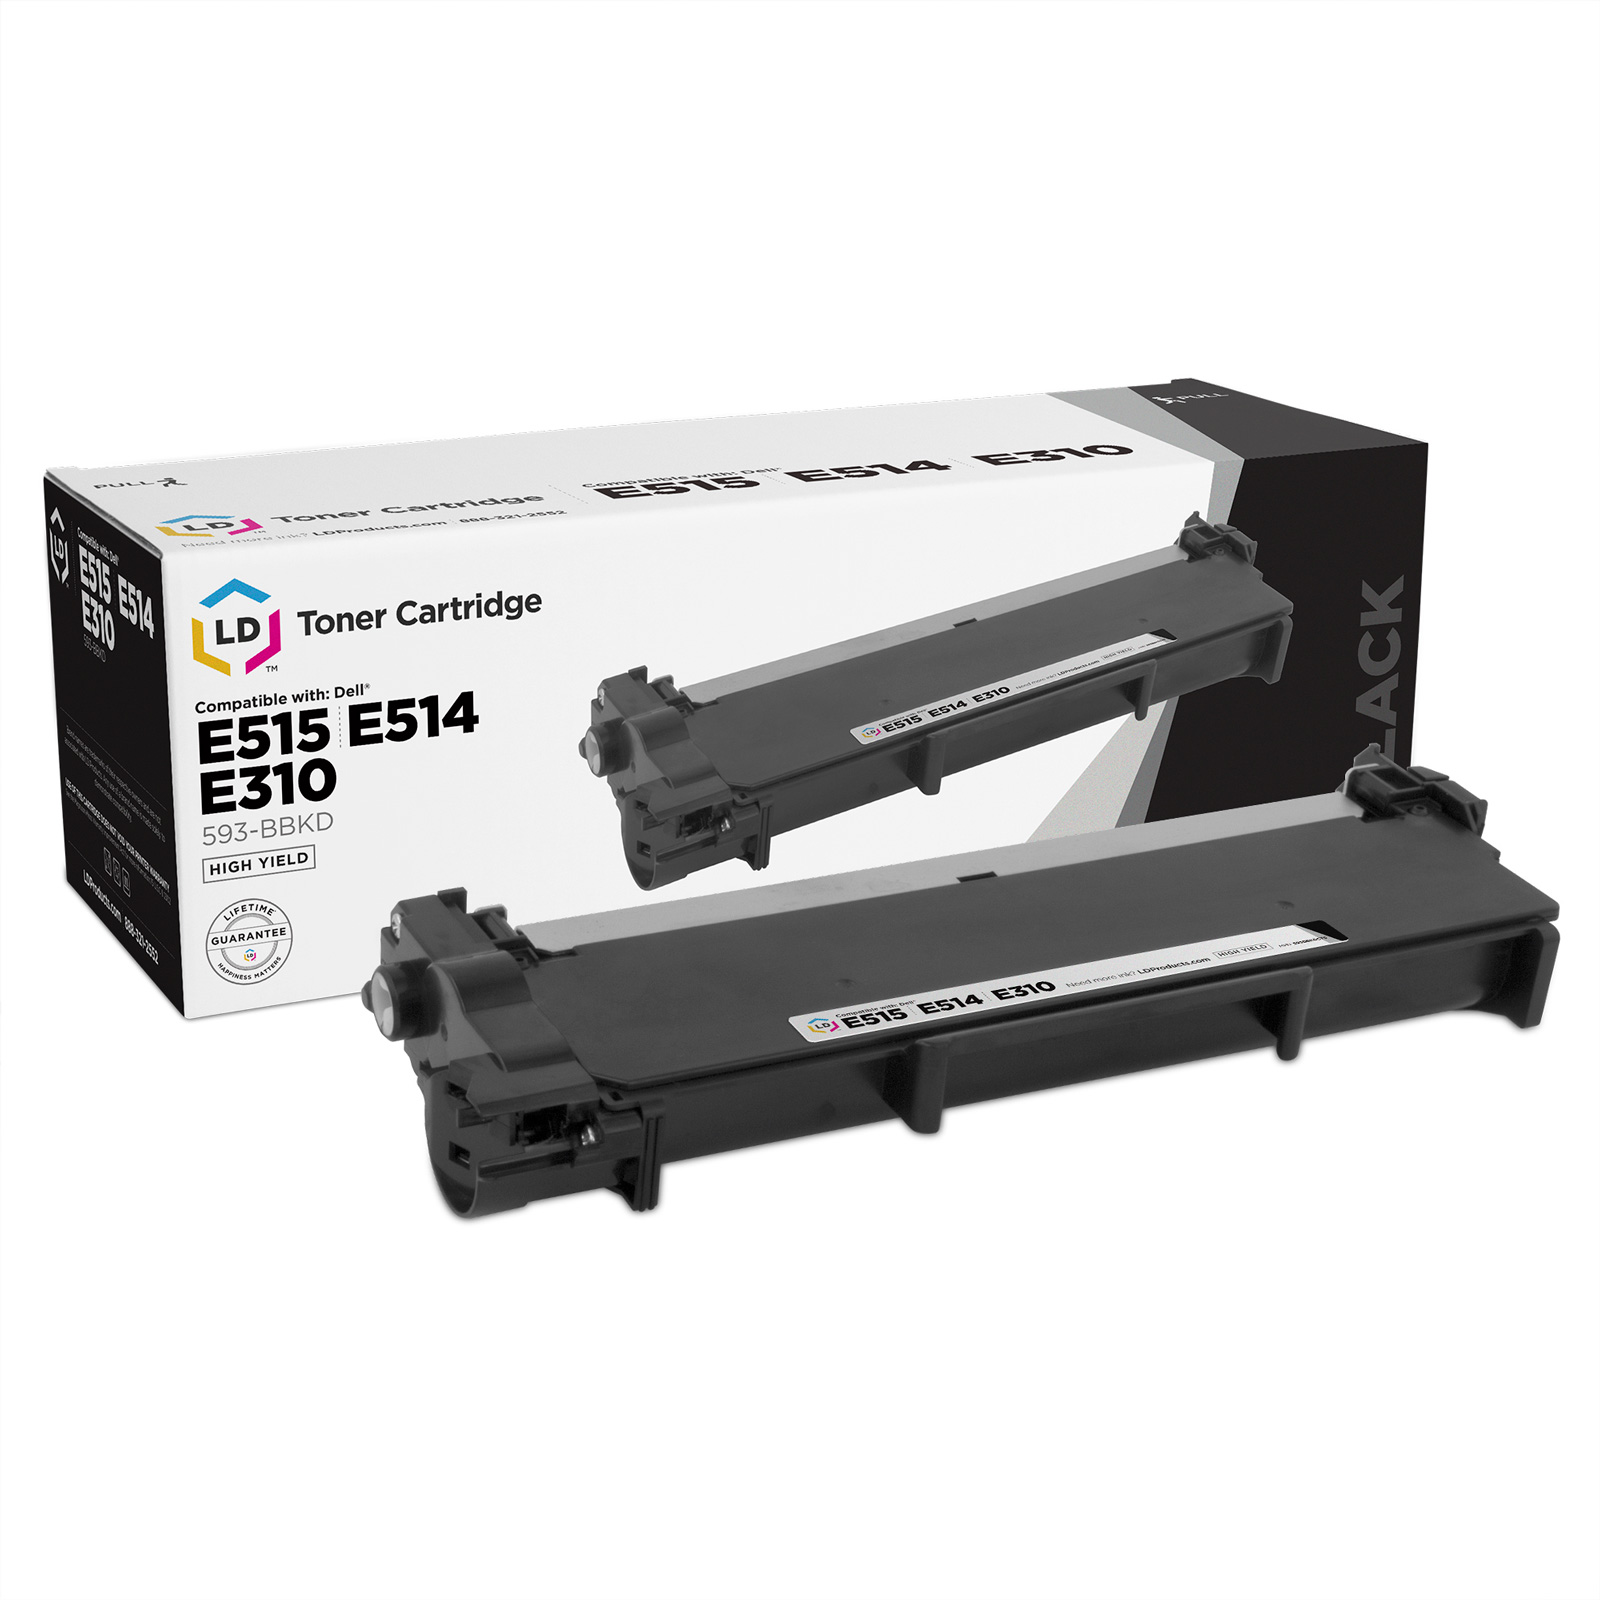 LD © Compatible 2,600 Page Black Toner Cartridge (P7RMX) for Dell E310/514dw/515dw Laser Printers